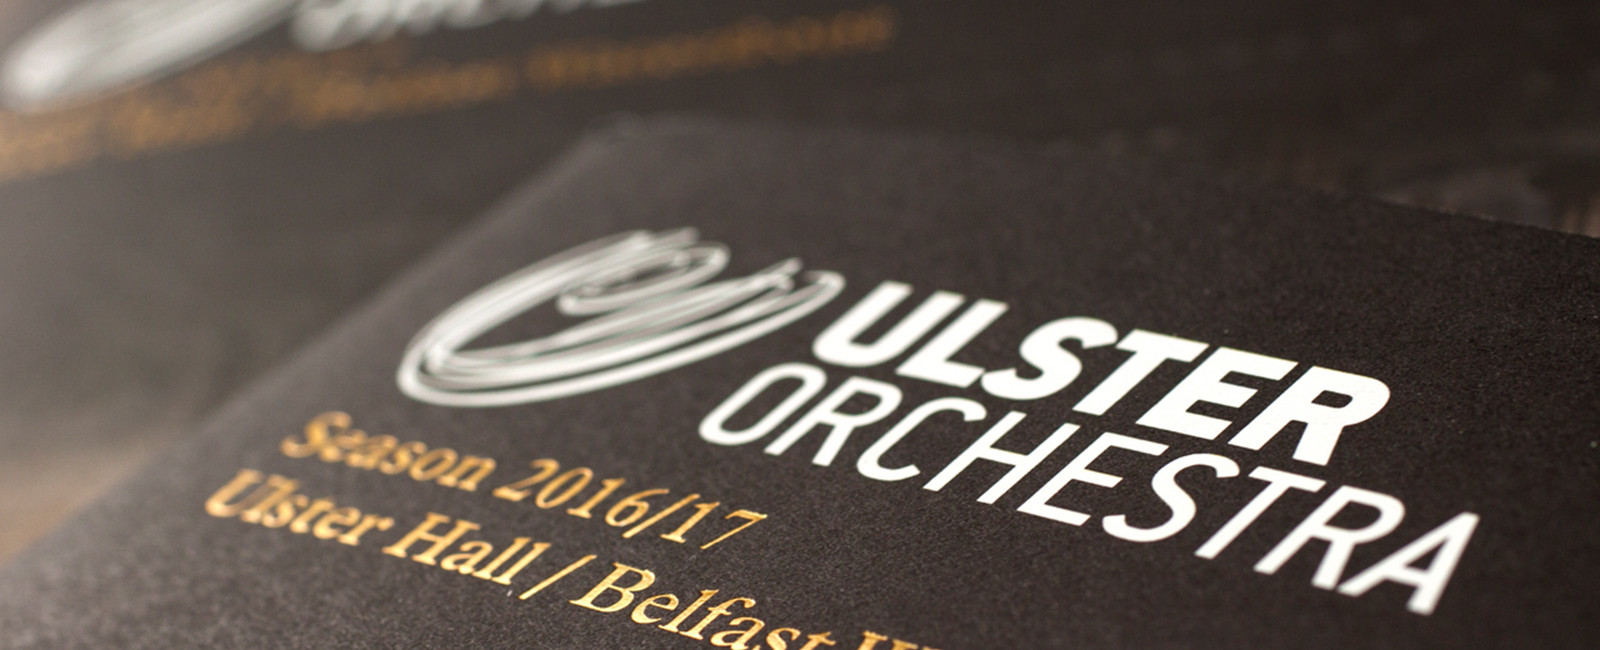 Ulster Orchestra: season programmes / advertising